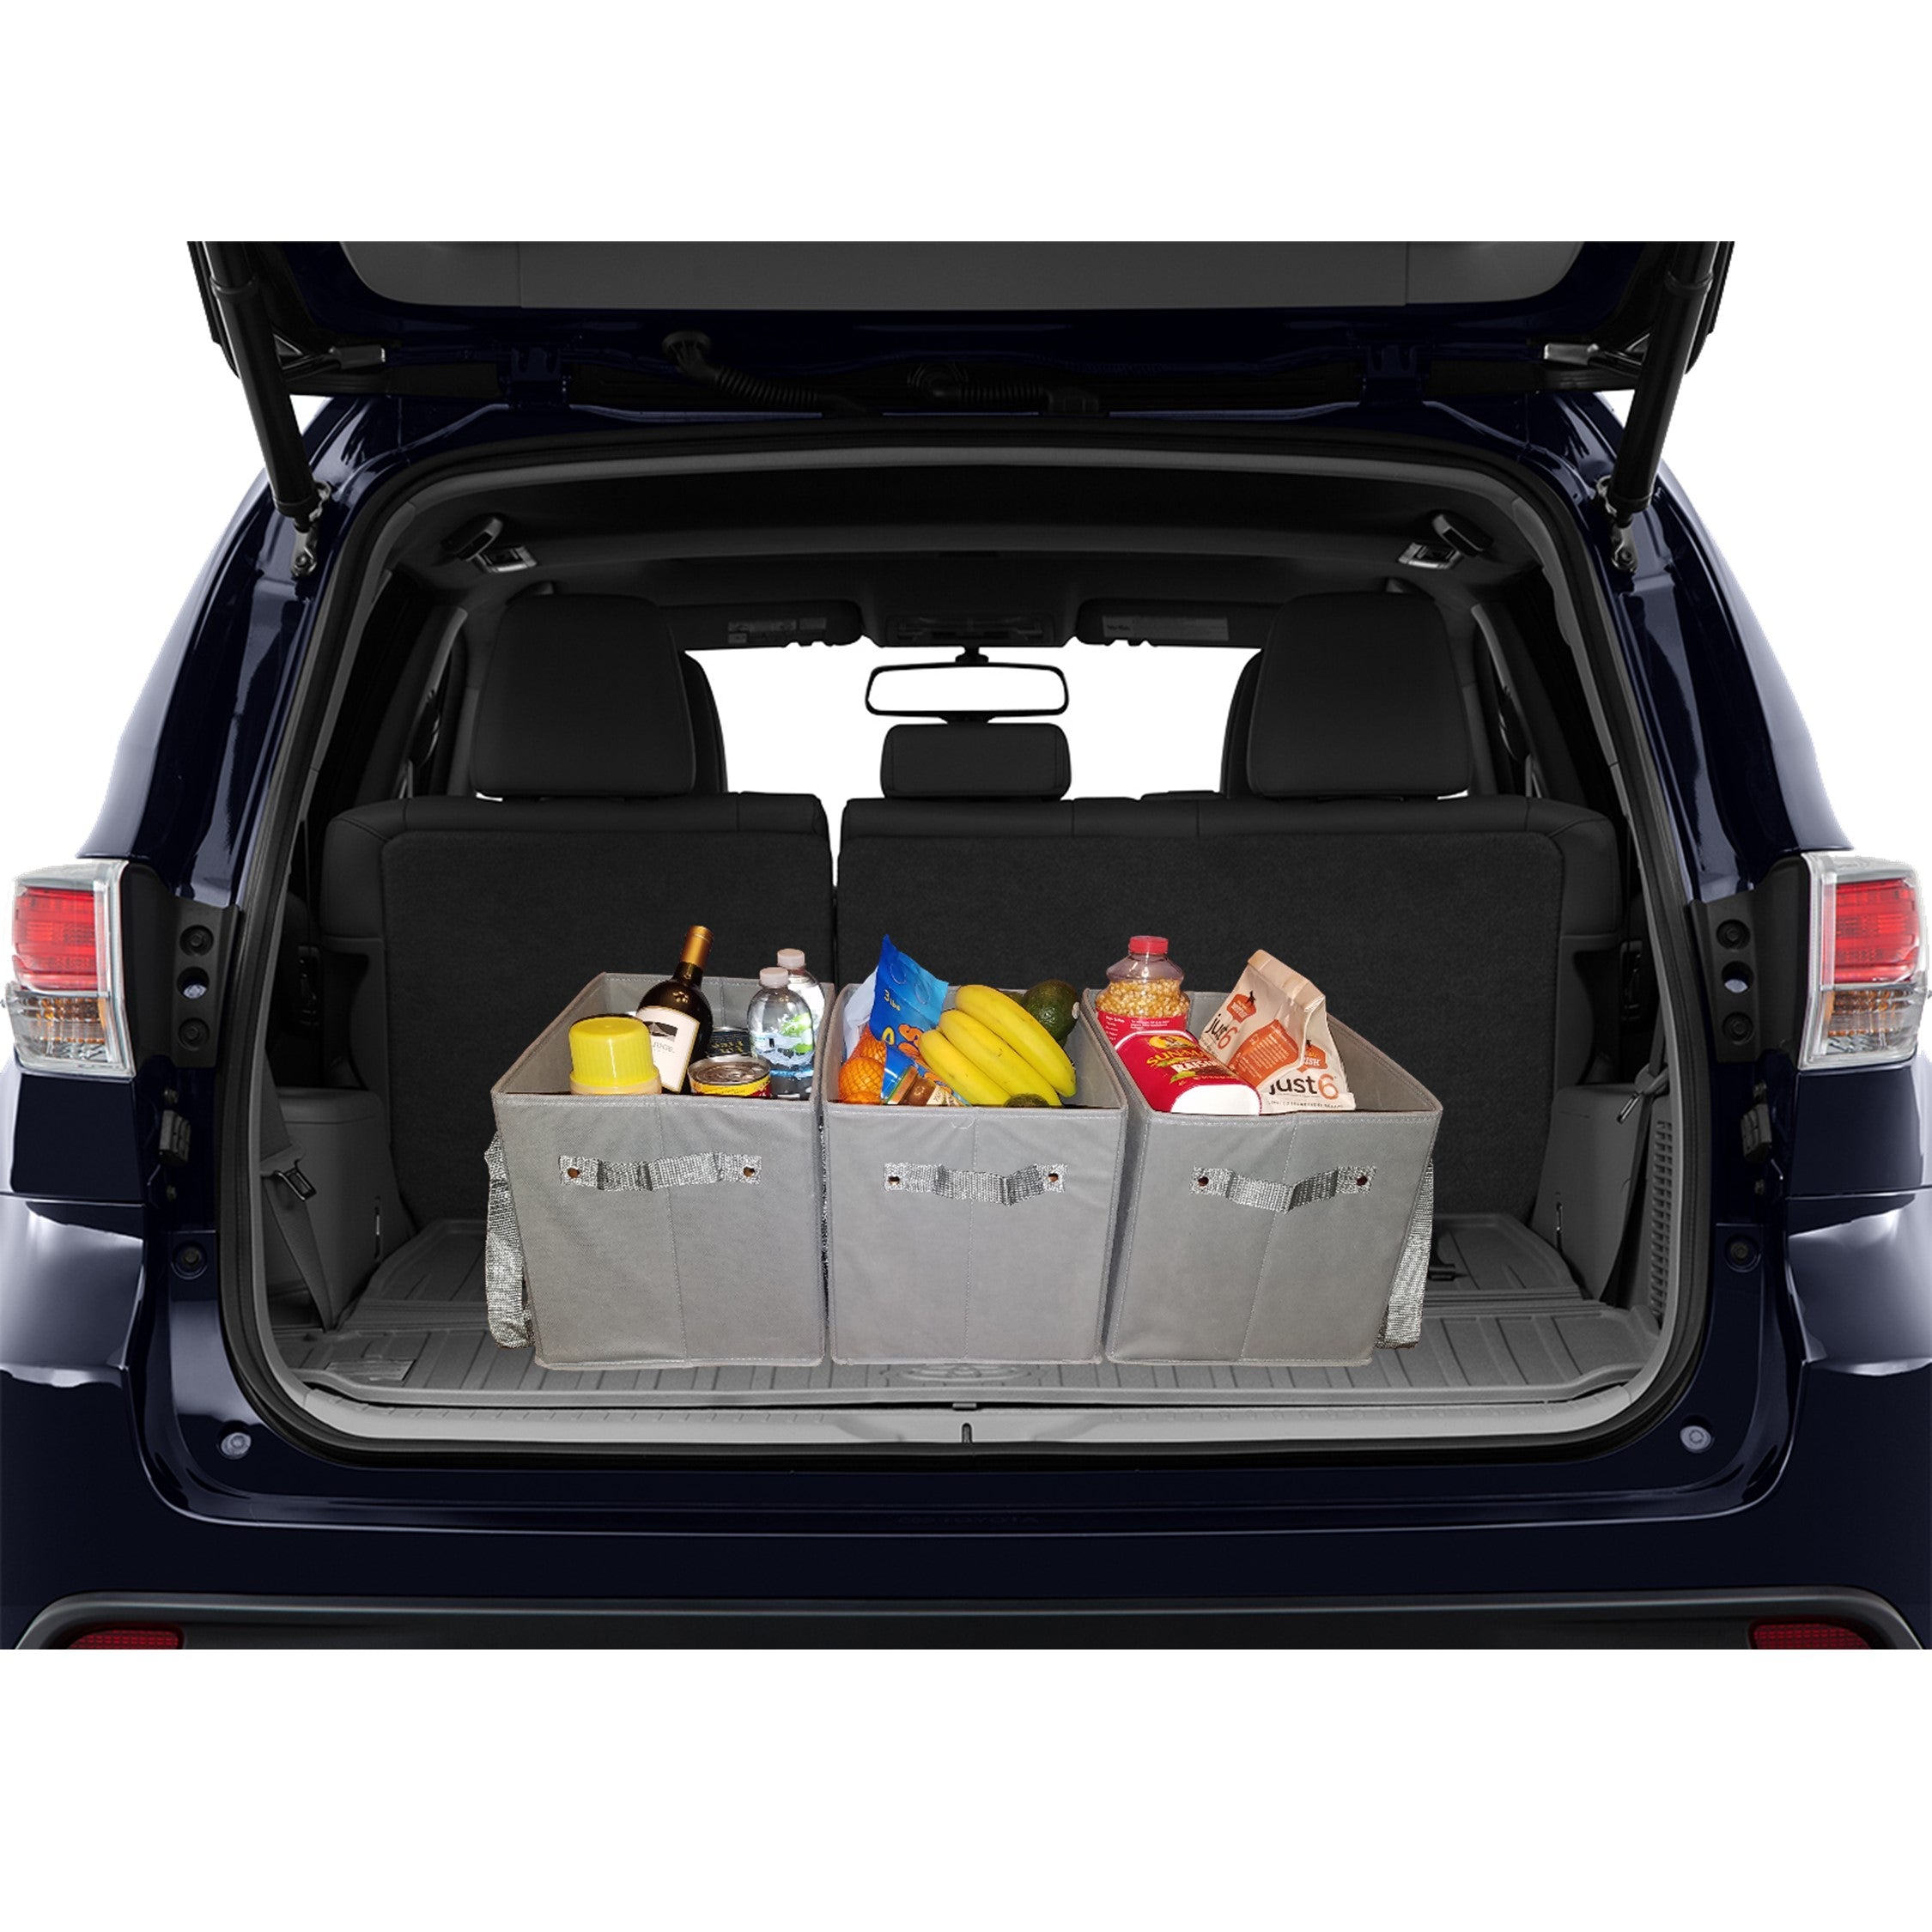 Set of 3 Reusable Grocery Bags Stay Upright and Fit in the Trunk of Your Car